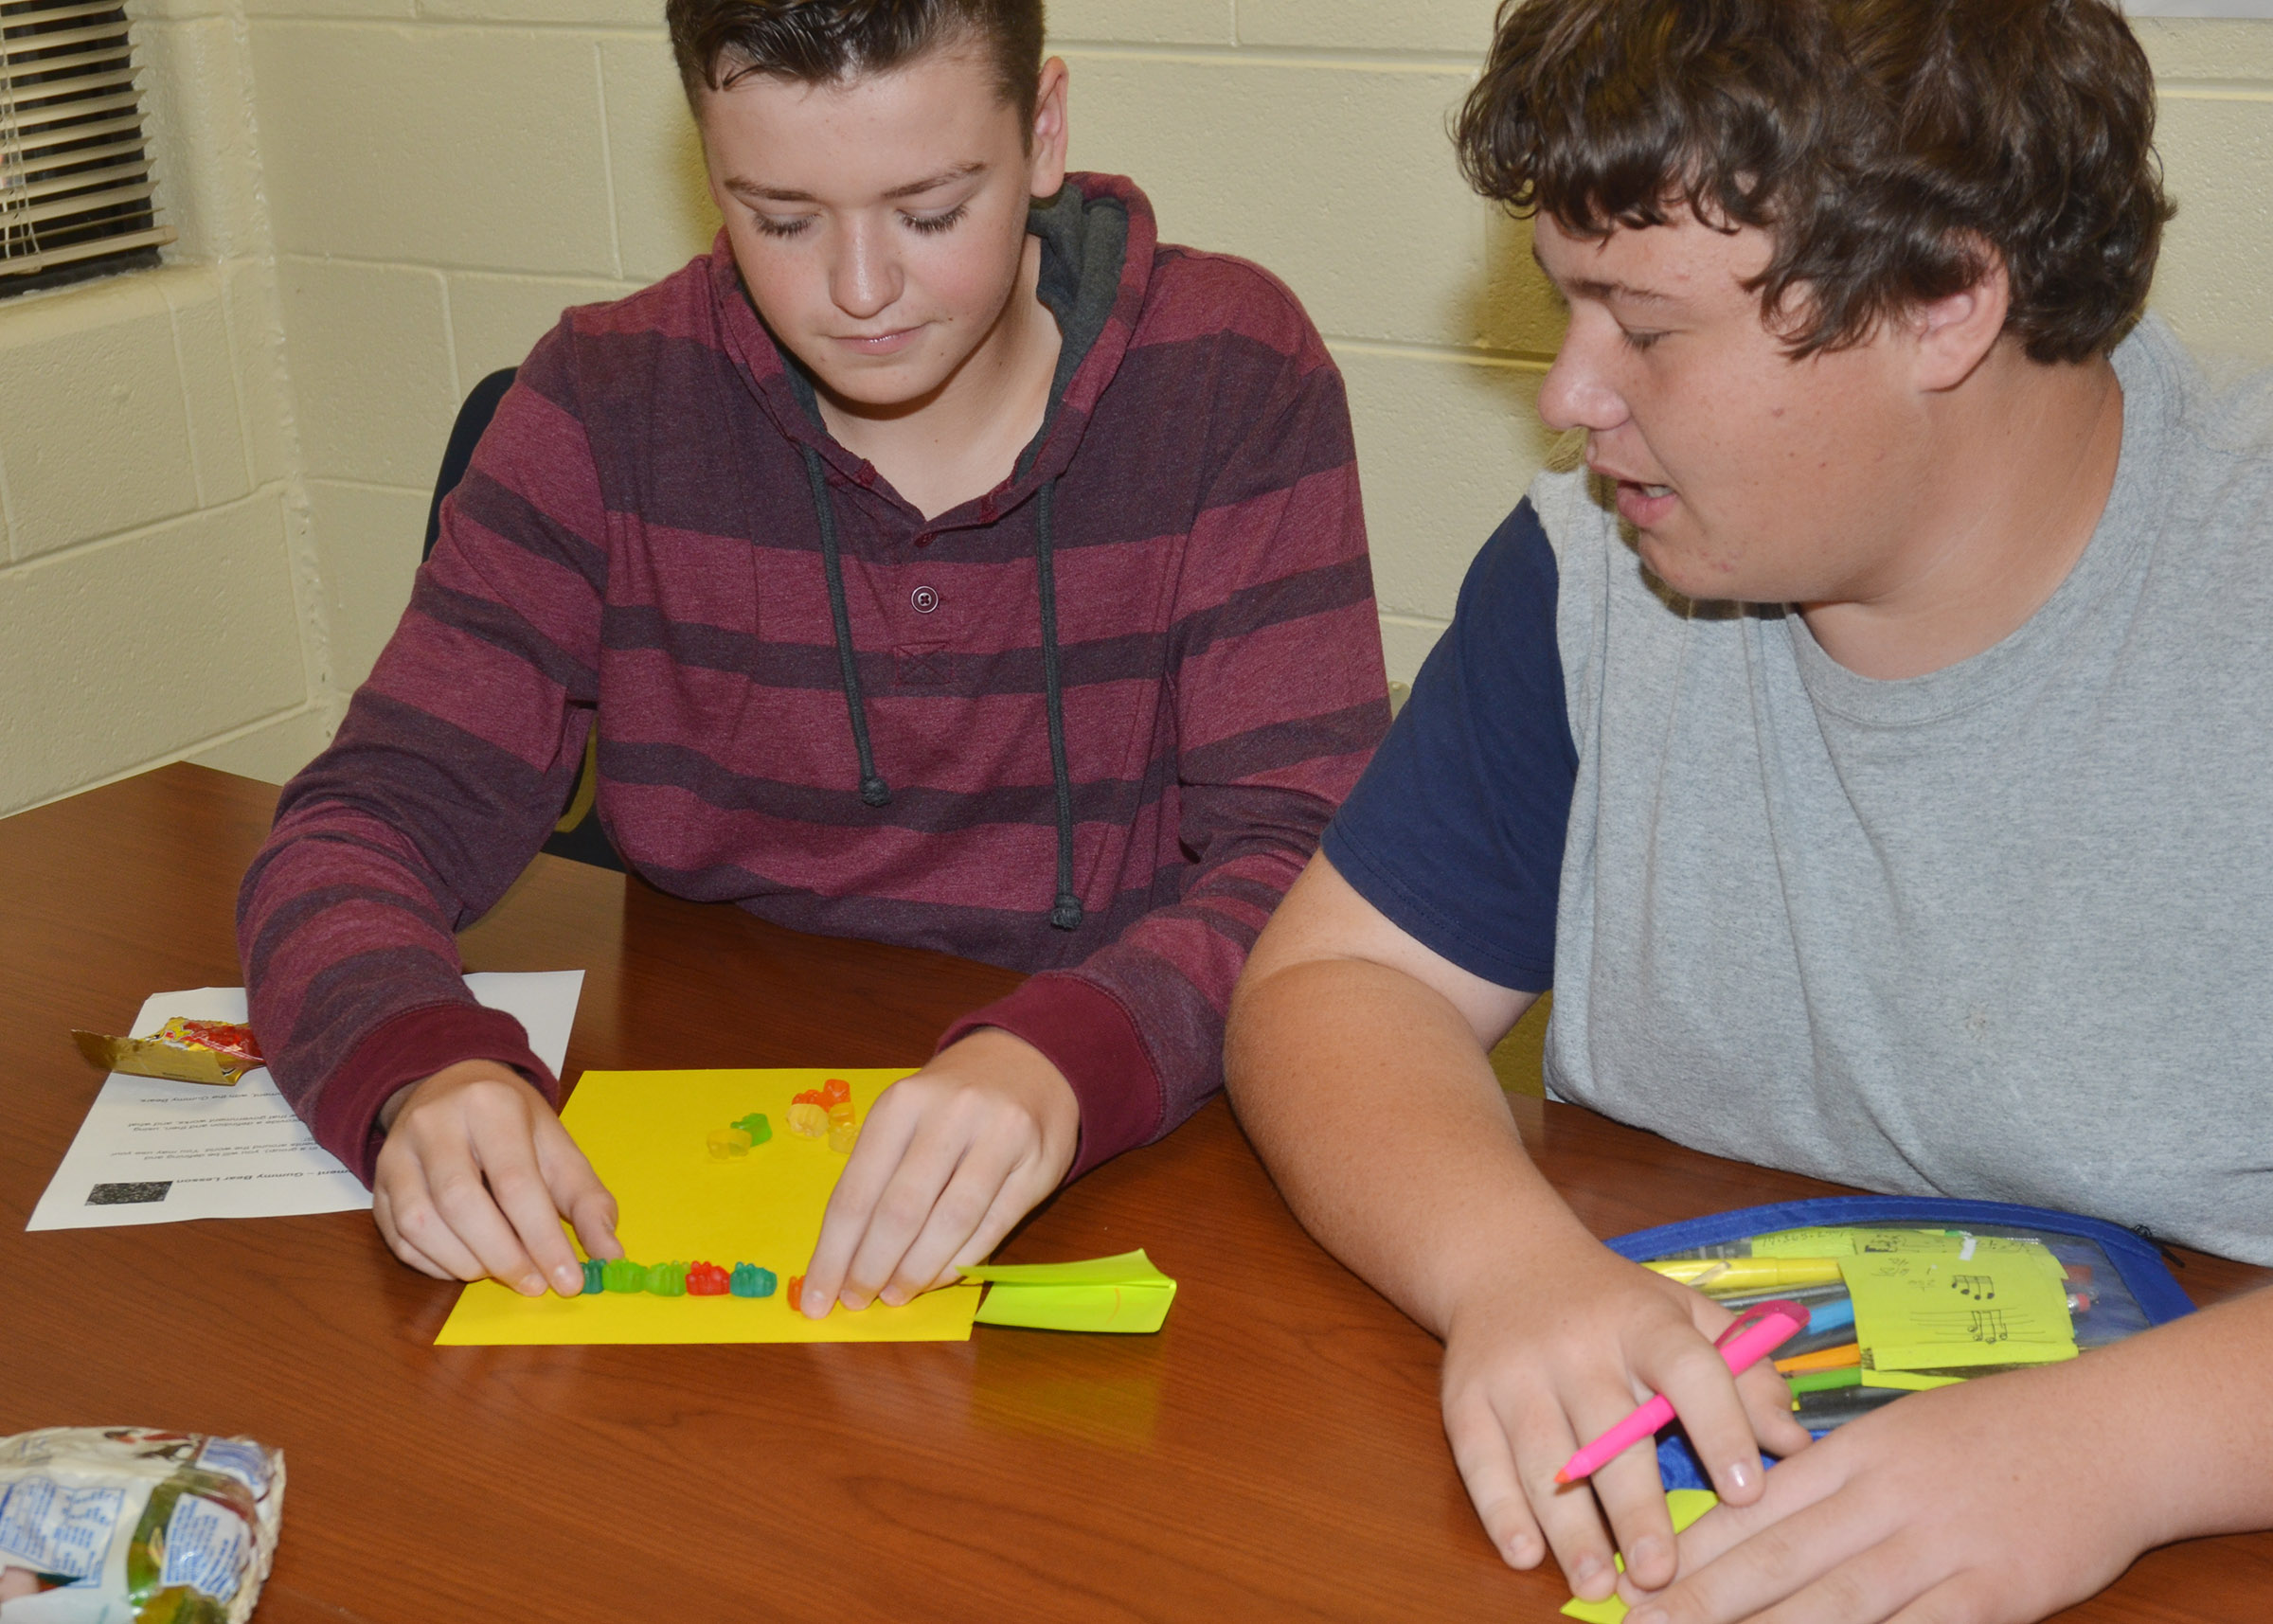 CHS sophomores Gavin Johnson, at left, and Conner Riley build their gummy bear government model.